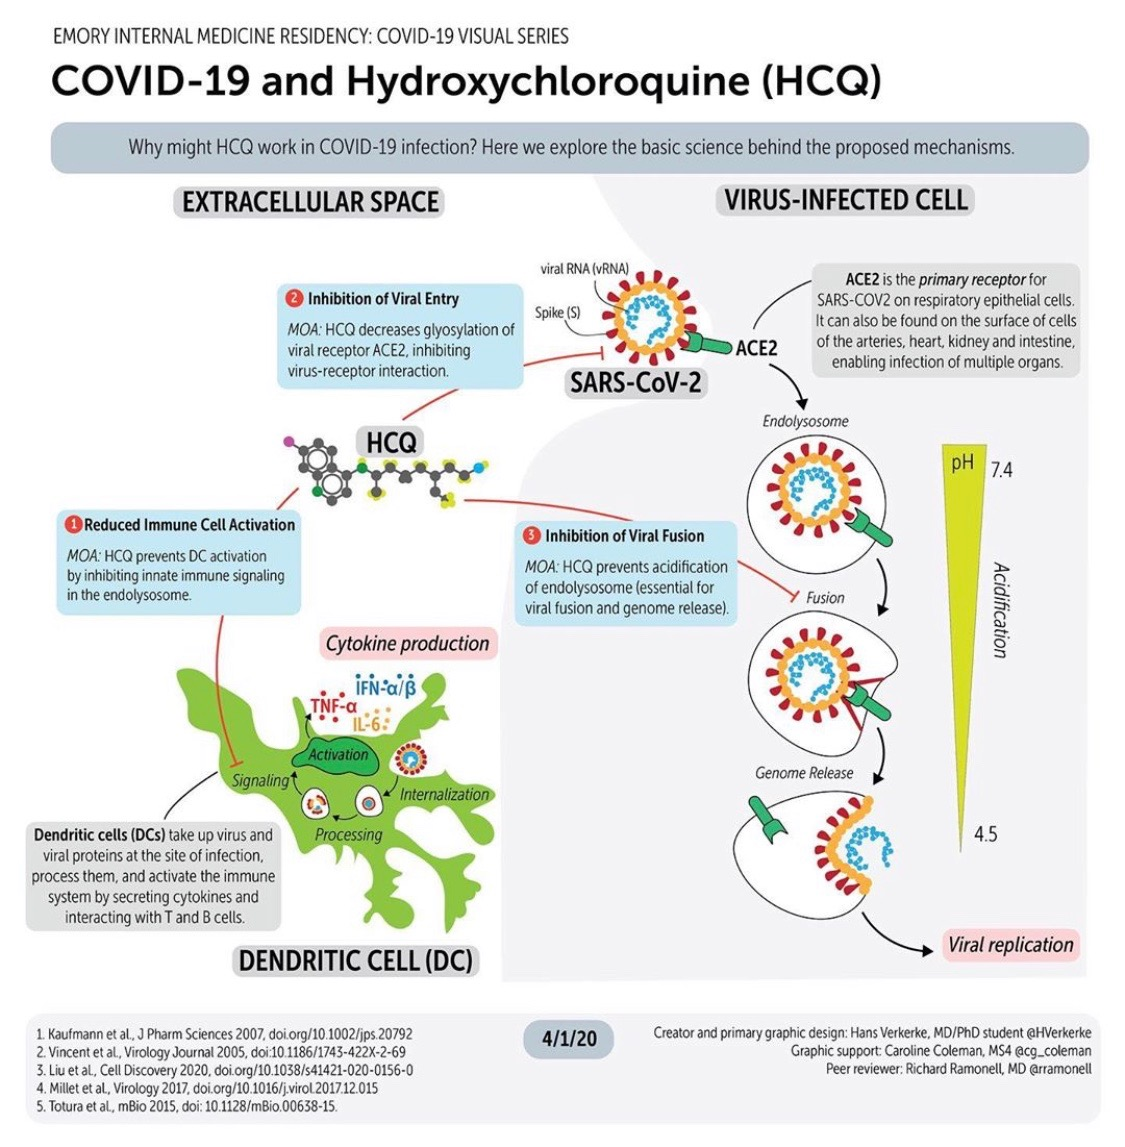 Hydroxychloroquine in COVID-19 - How might hydroxychloroquine help combat a COVID-19 infection?